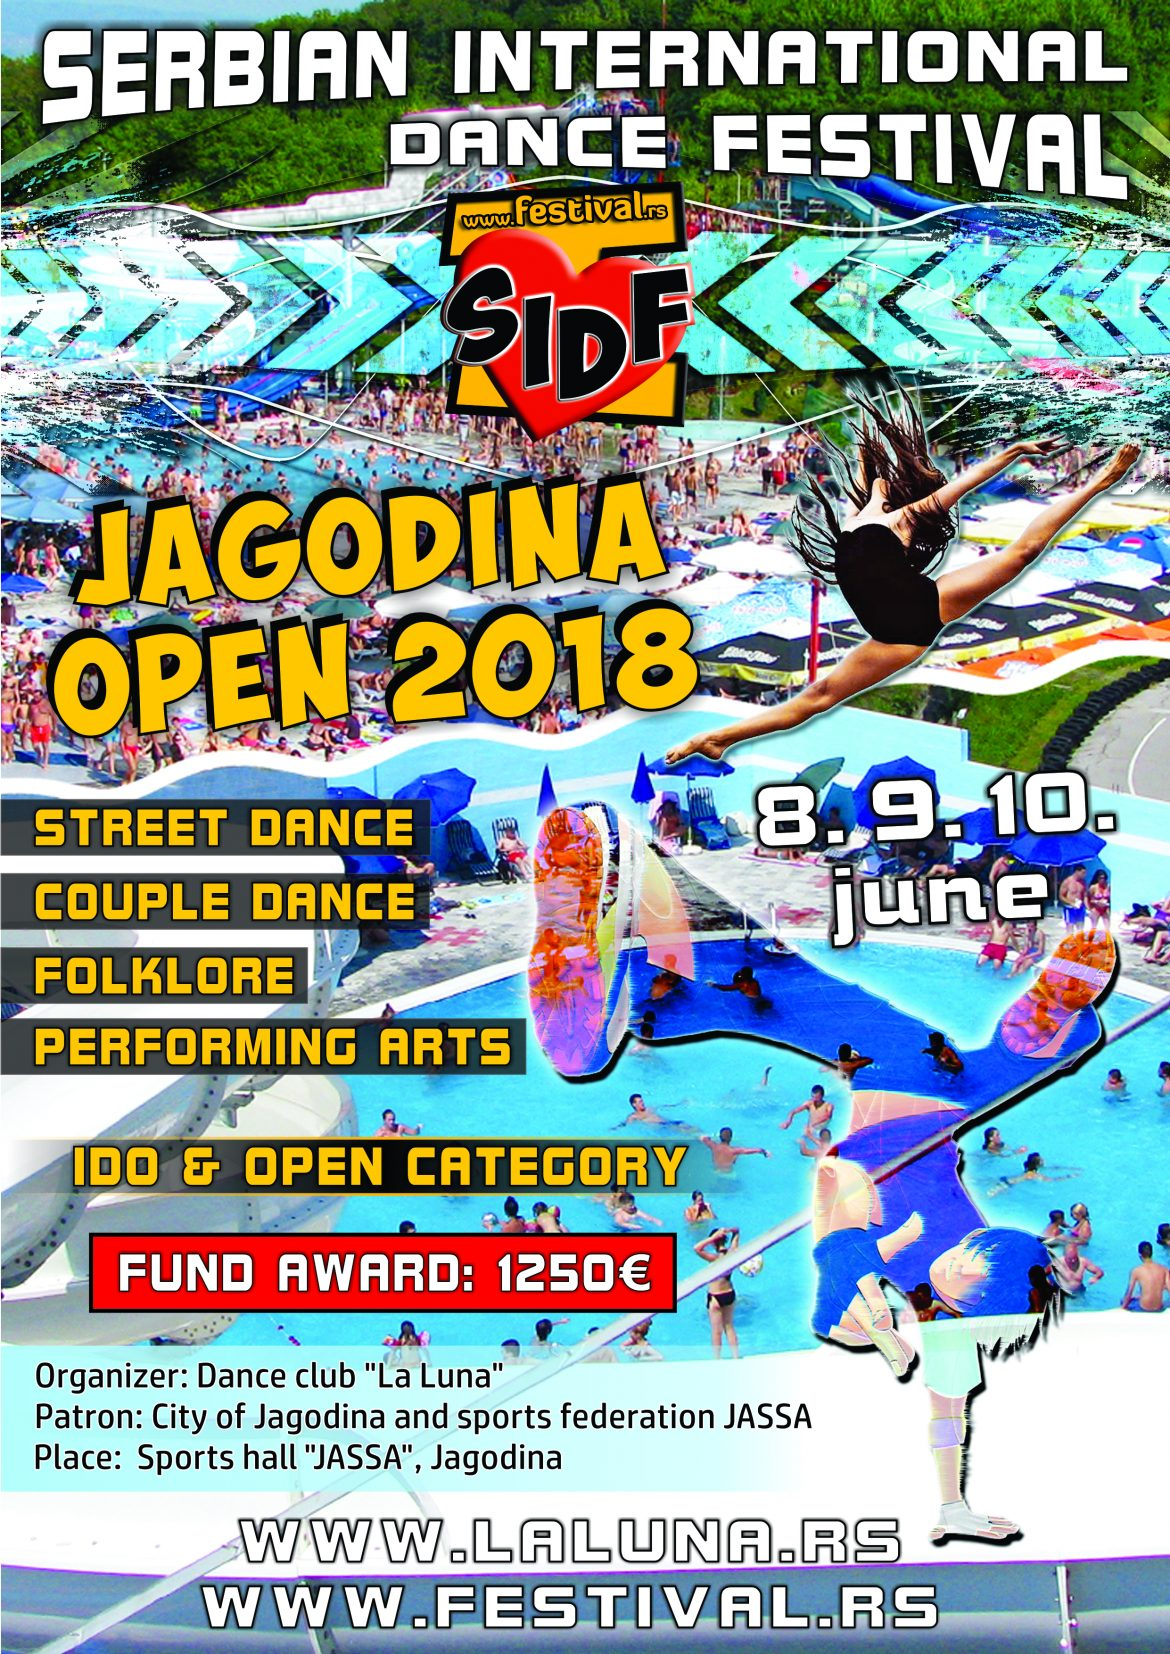 Serbian International Dance Festival-Jagodina Open-8-10.jun.2018.god.